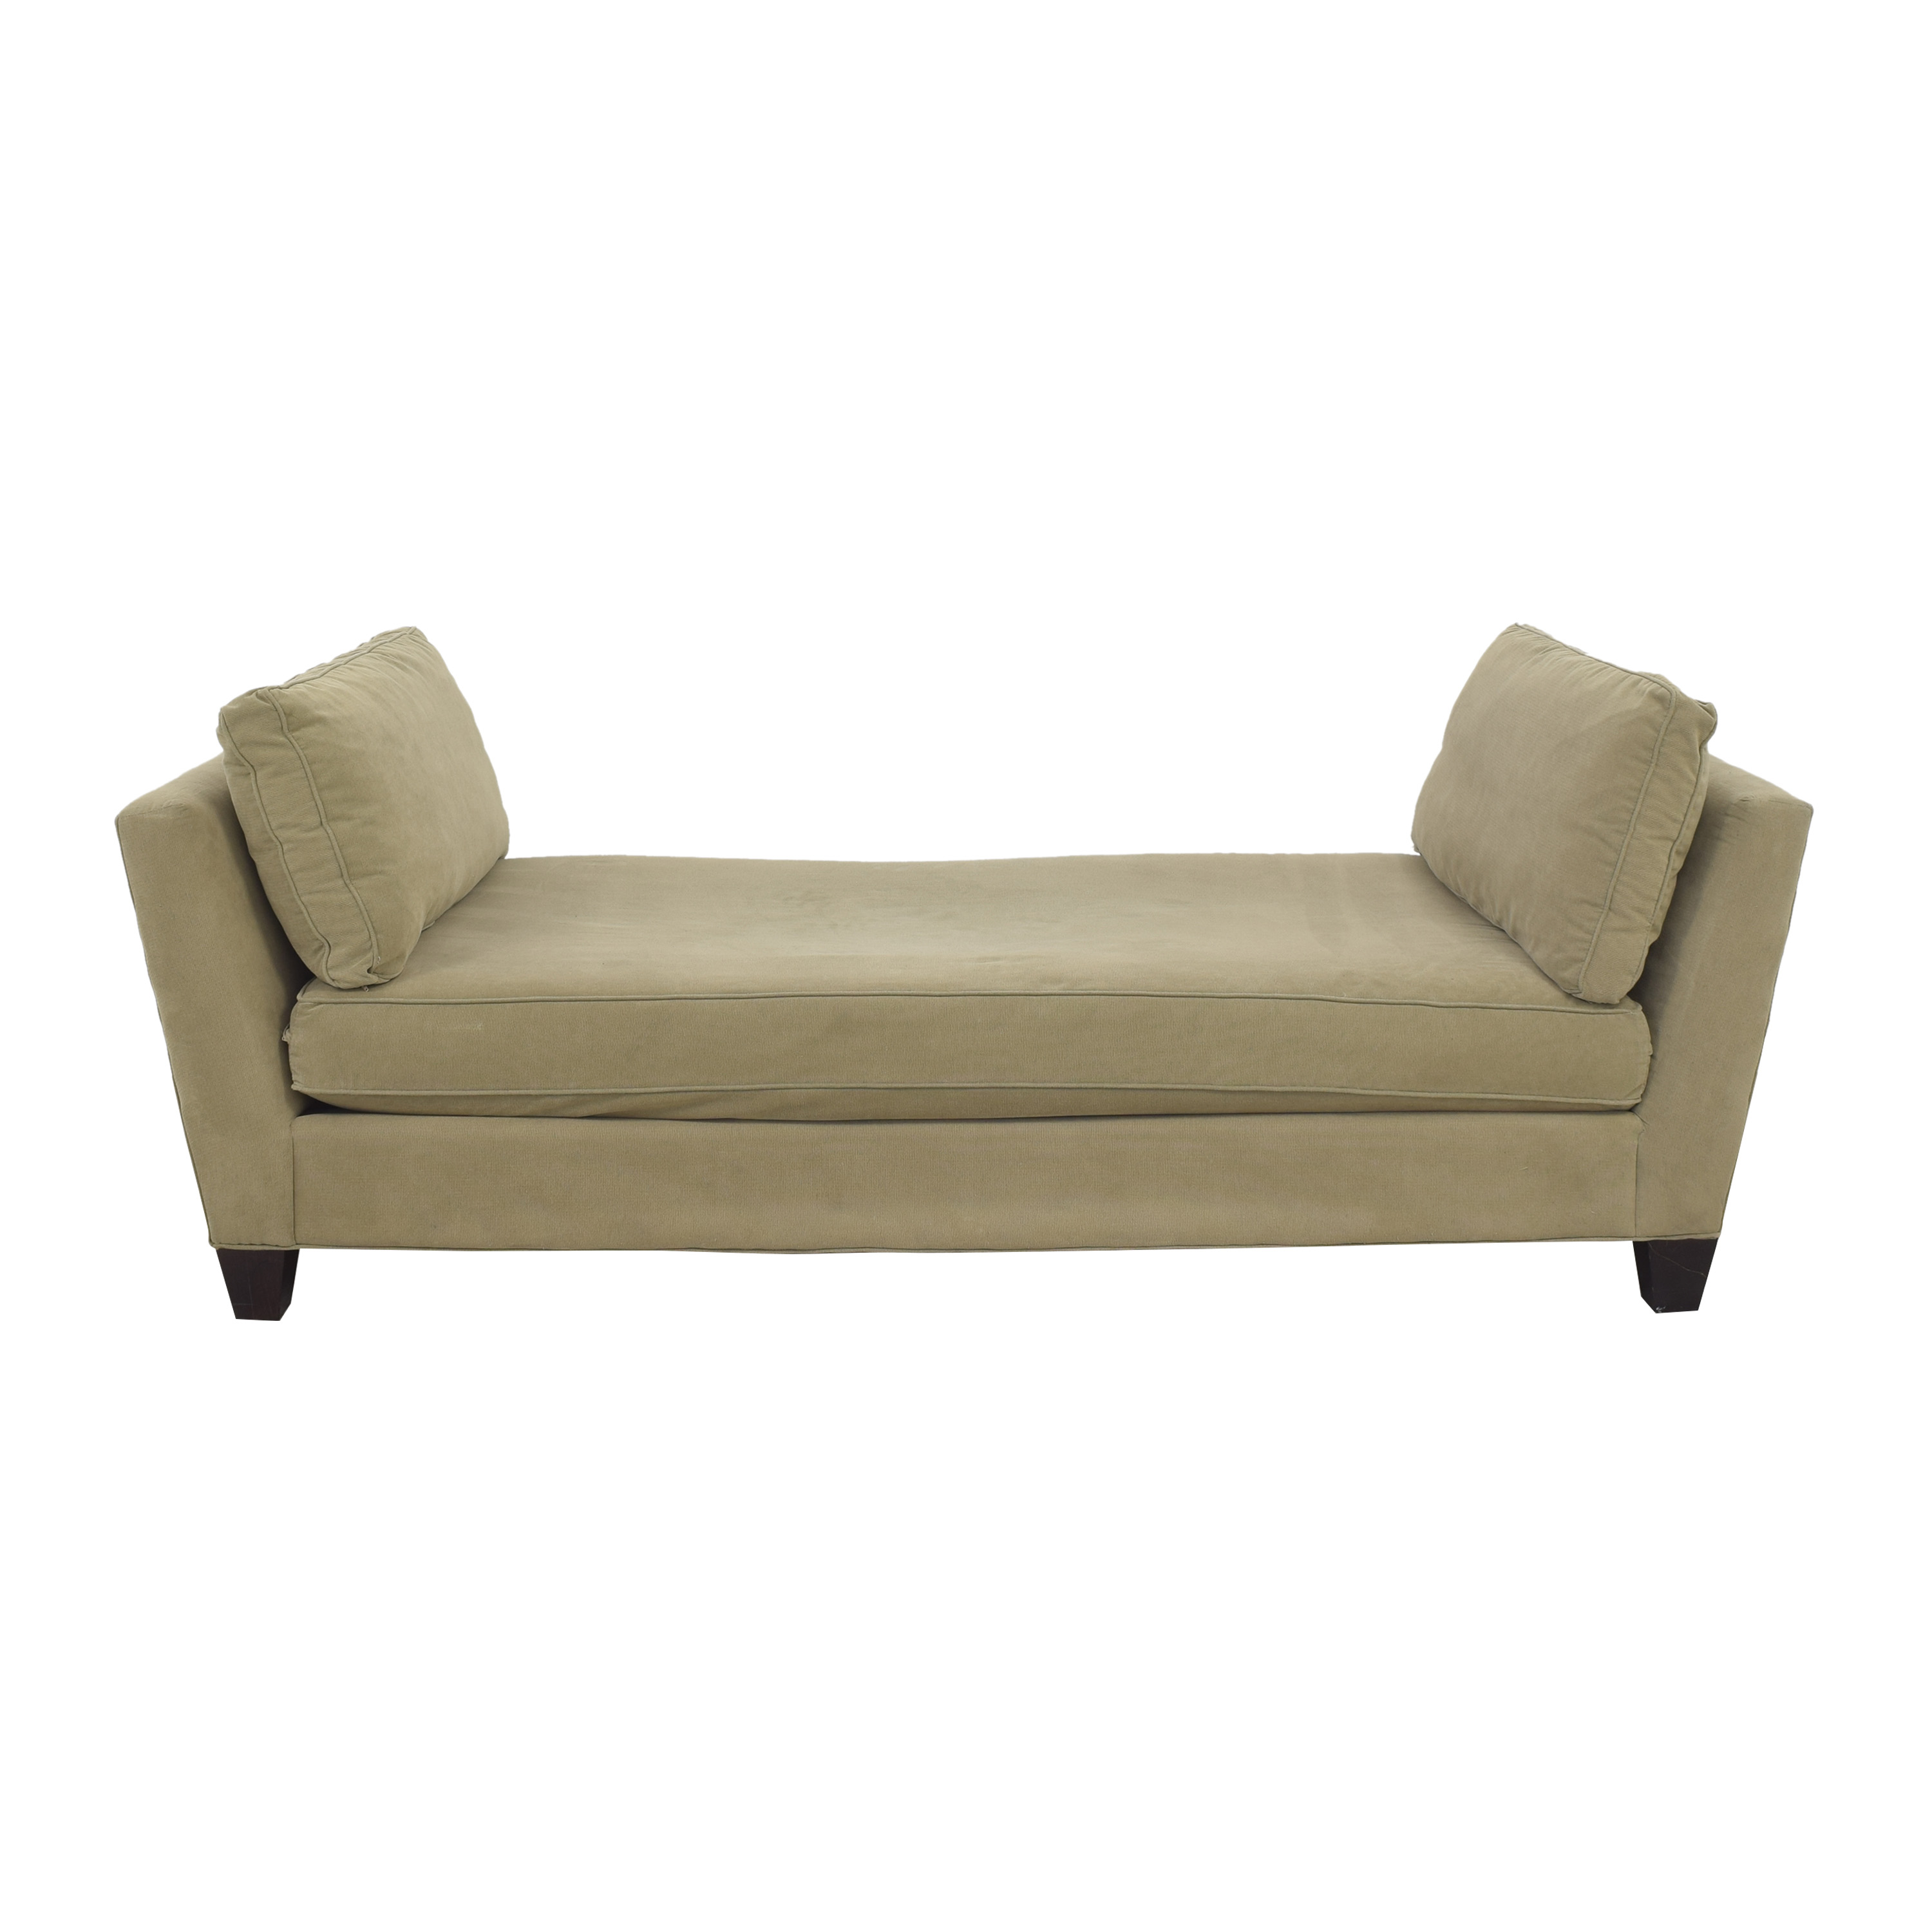 Crate & Barrel Crate & Barrel Marlowe Daybed Bench pa